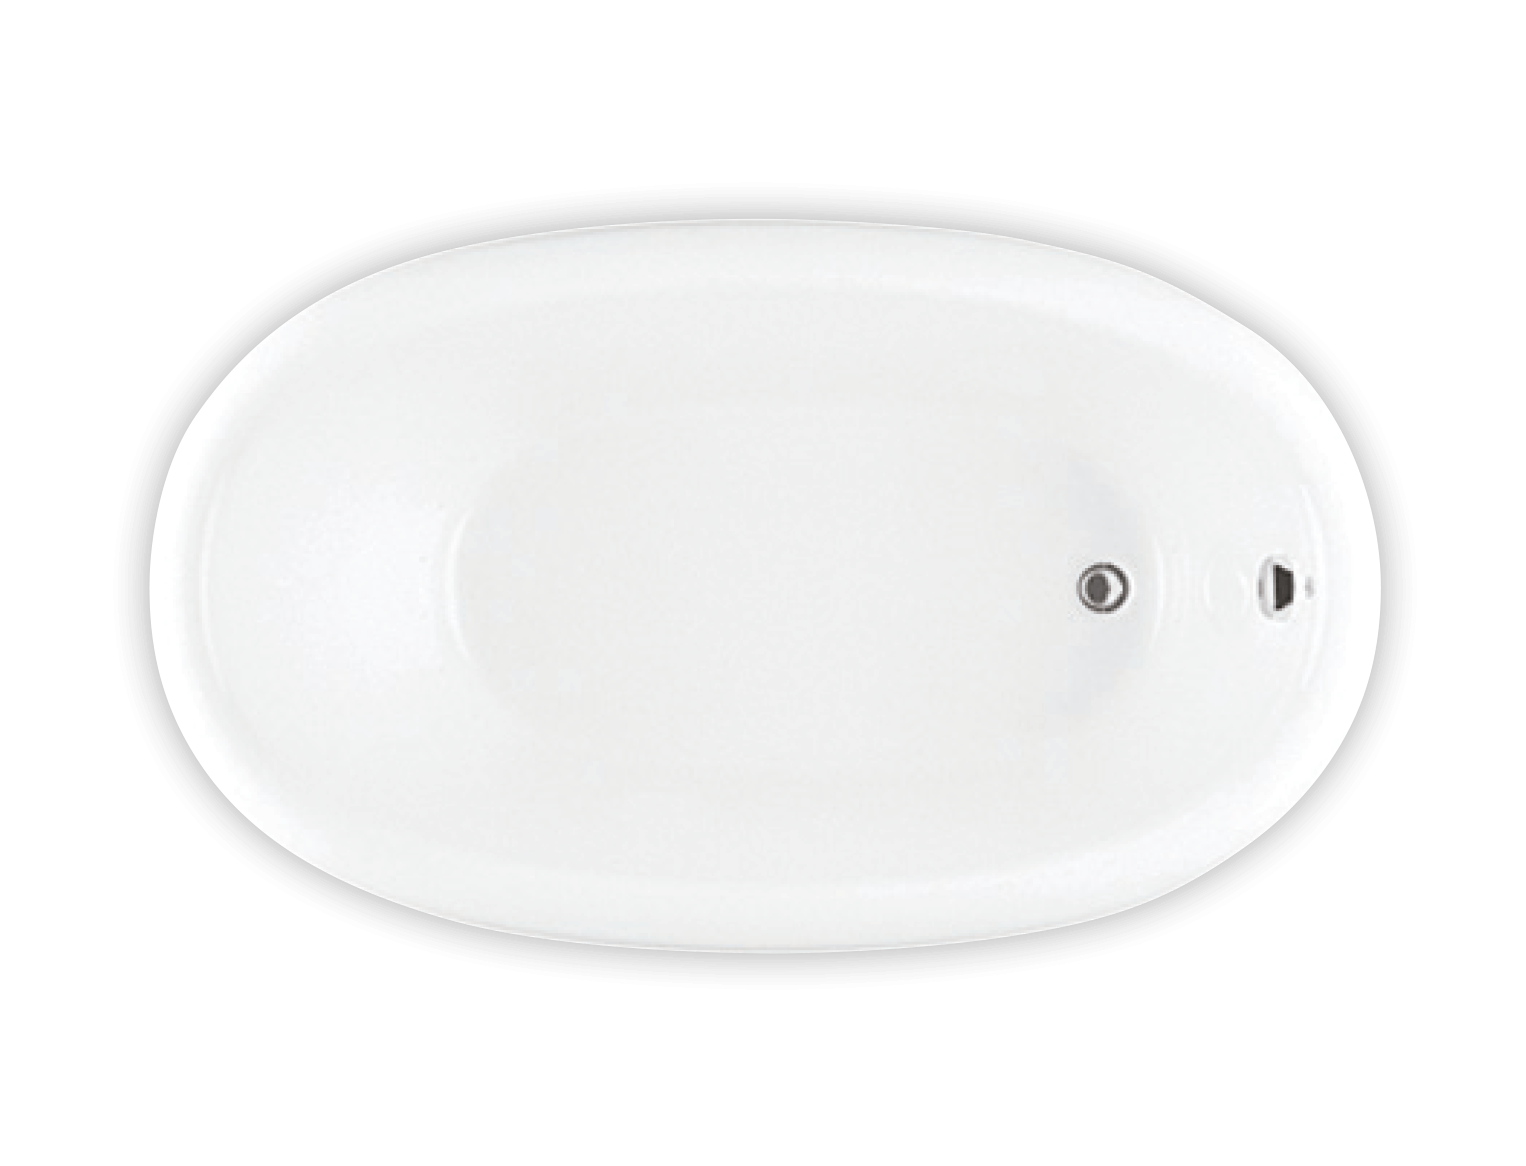 Bainultra Ellipse® 6036 drop-in air jet bathtub for your modern bathroom